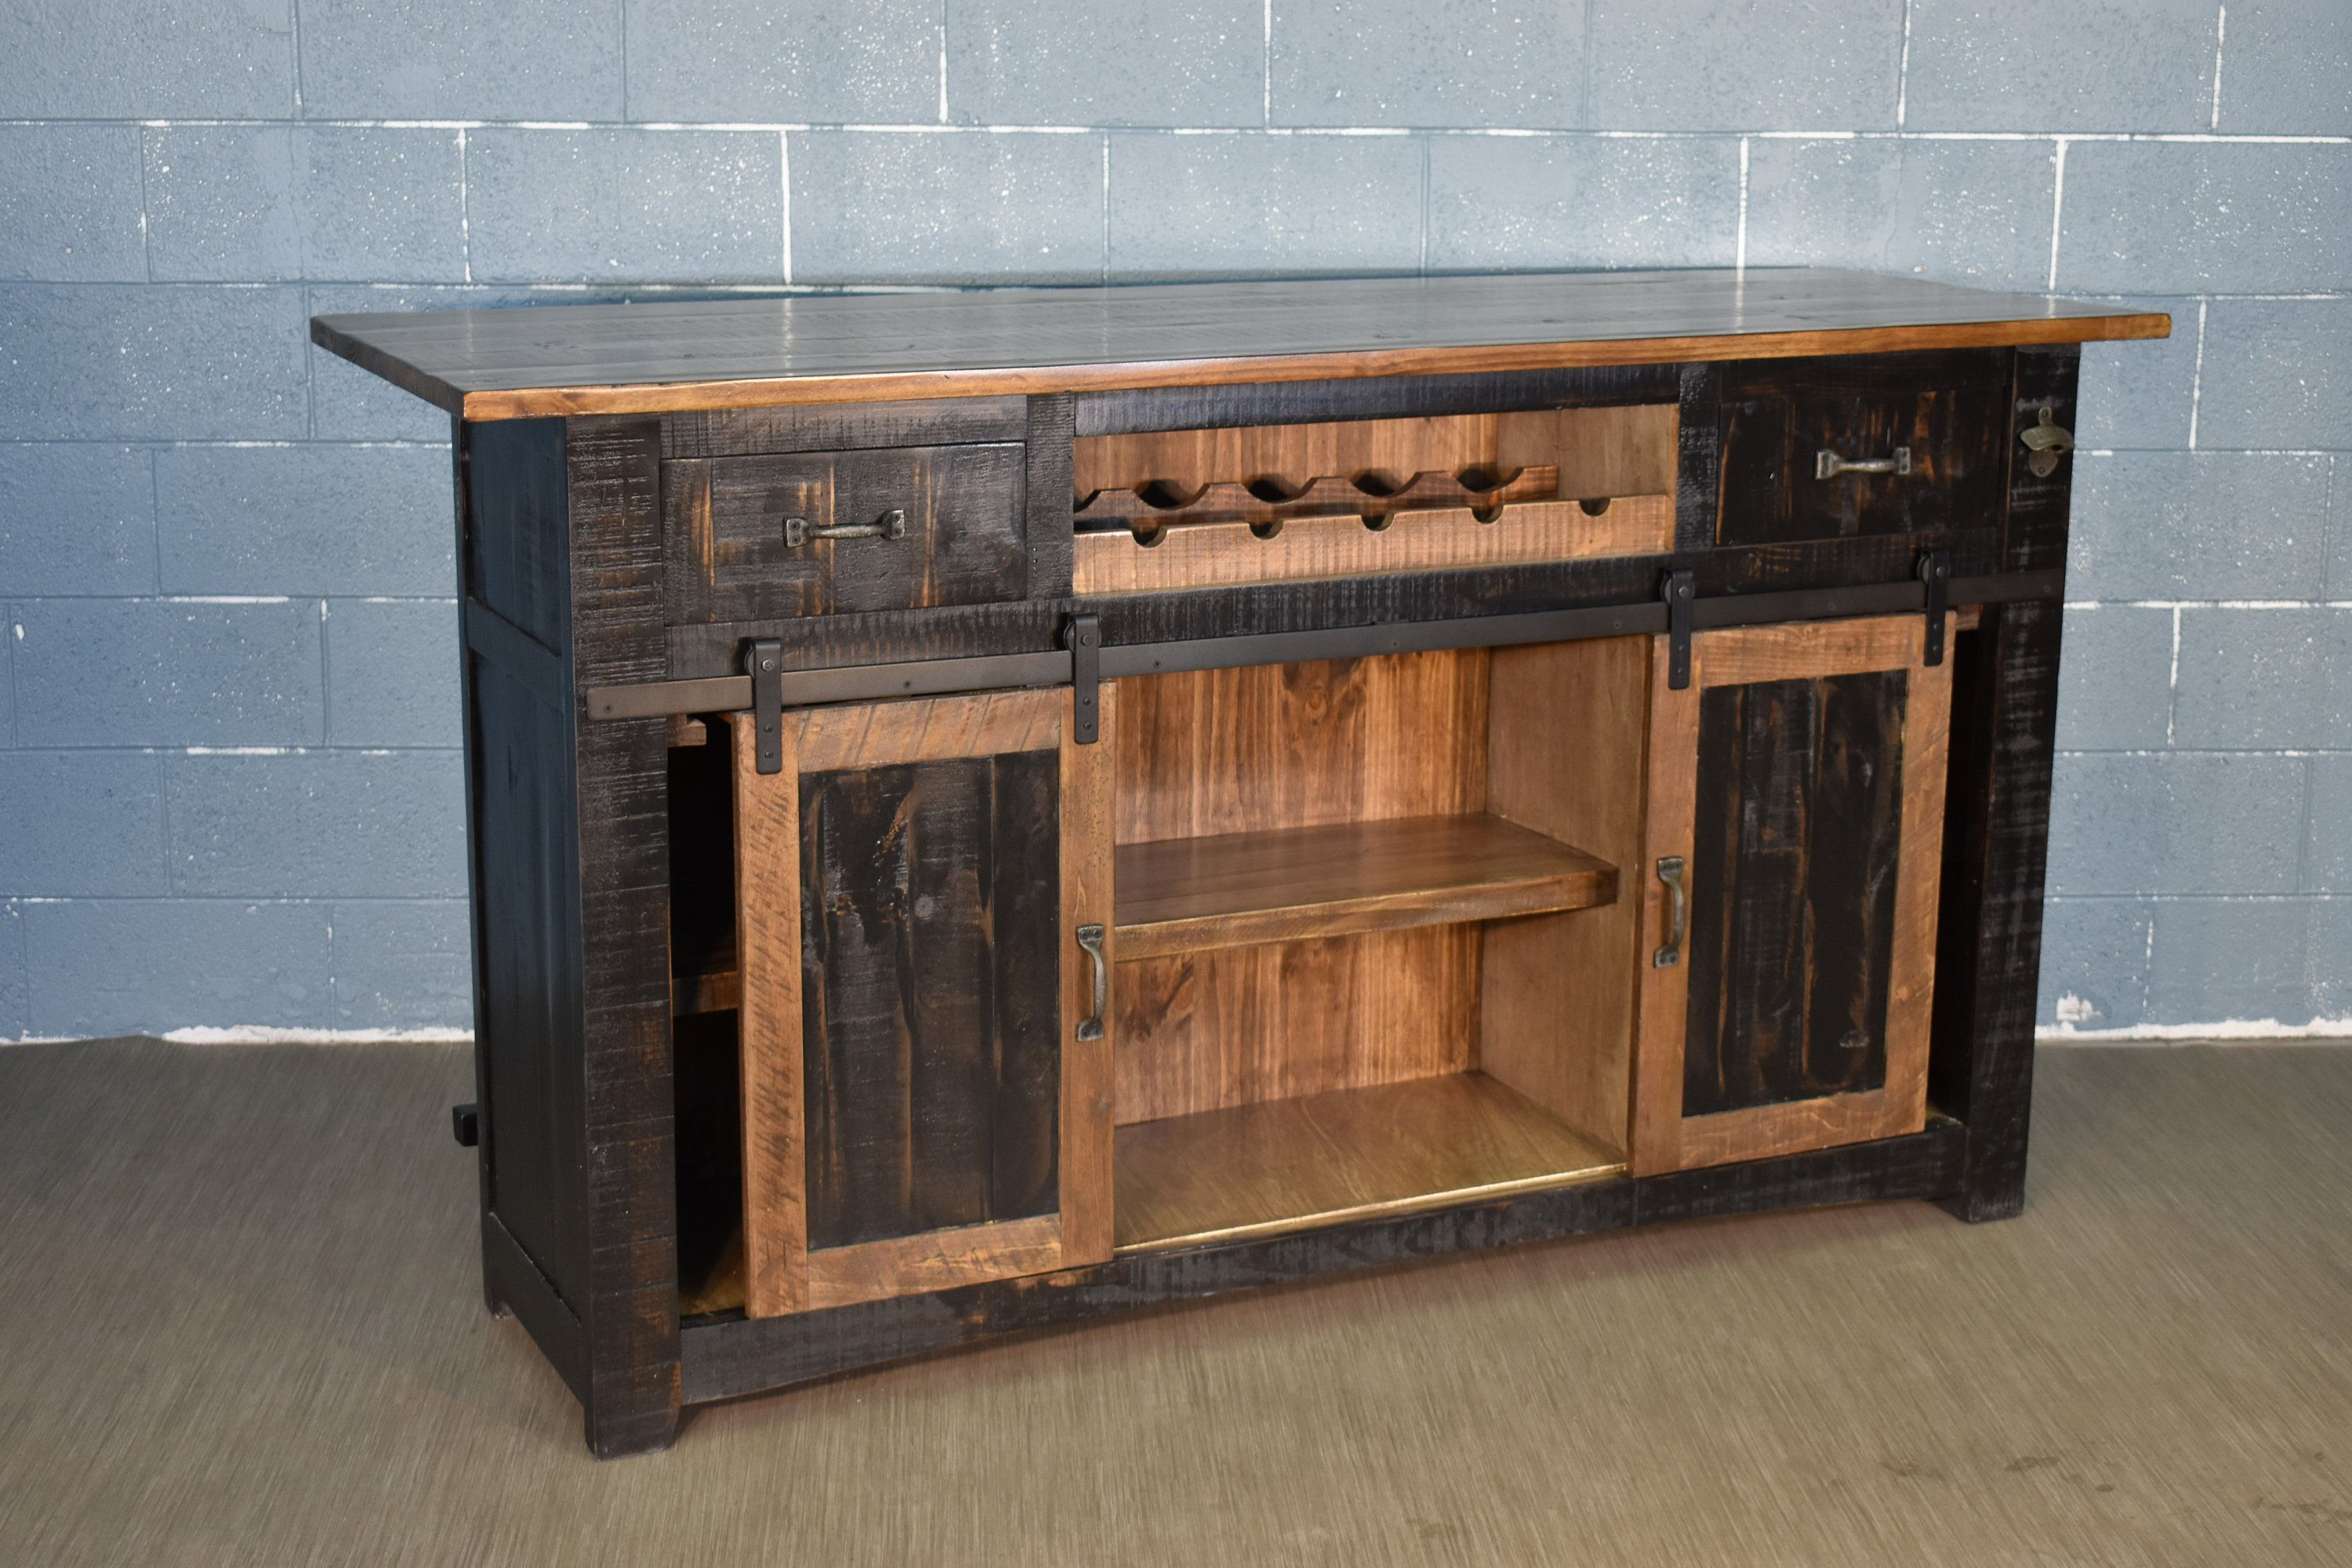 Rustic Solid Wood Bar With Barn Doors Wone Rack Storage And Counter Space Wood Coffee Table Rustic Wood Bars Solid Wood Furniture